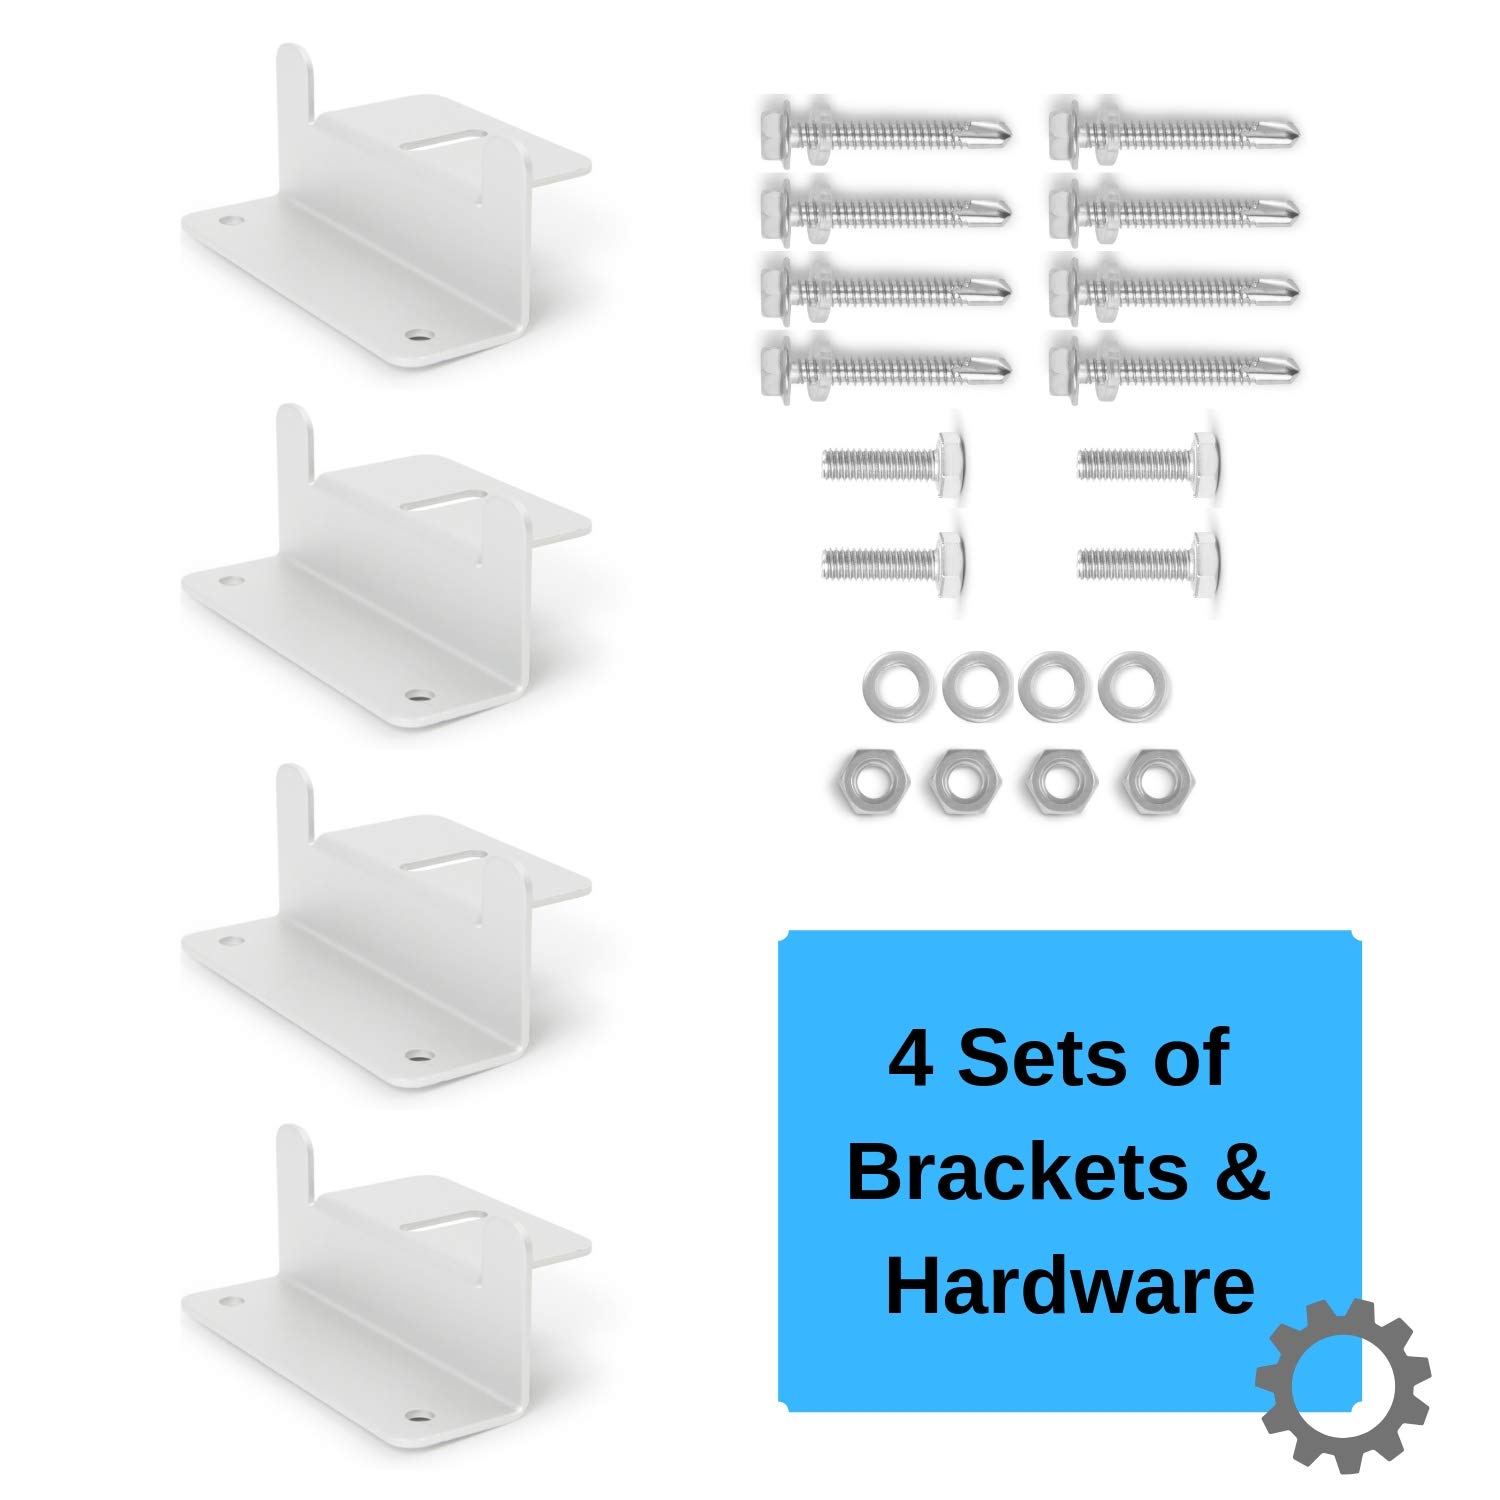 Houseables Solar Panel Mounting Brackets, Roof Panels Z Bracket, 2.5'' x 1.5'' x 3.9'', 4 Sets (16 Pc), Silver, Aluminum, Adjustable Mount Bolt Kit, Accessories for Boats, Wind Generators, RVs, Trailers by Houseables (Image #4)